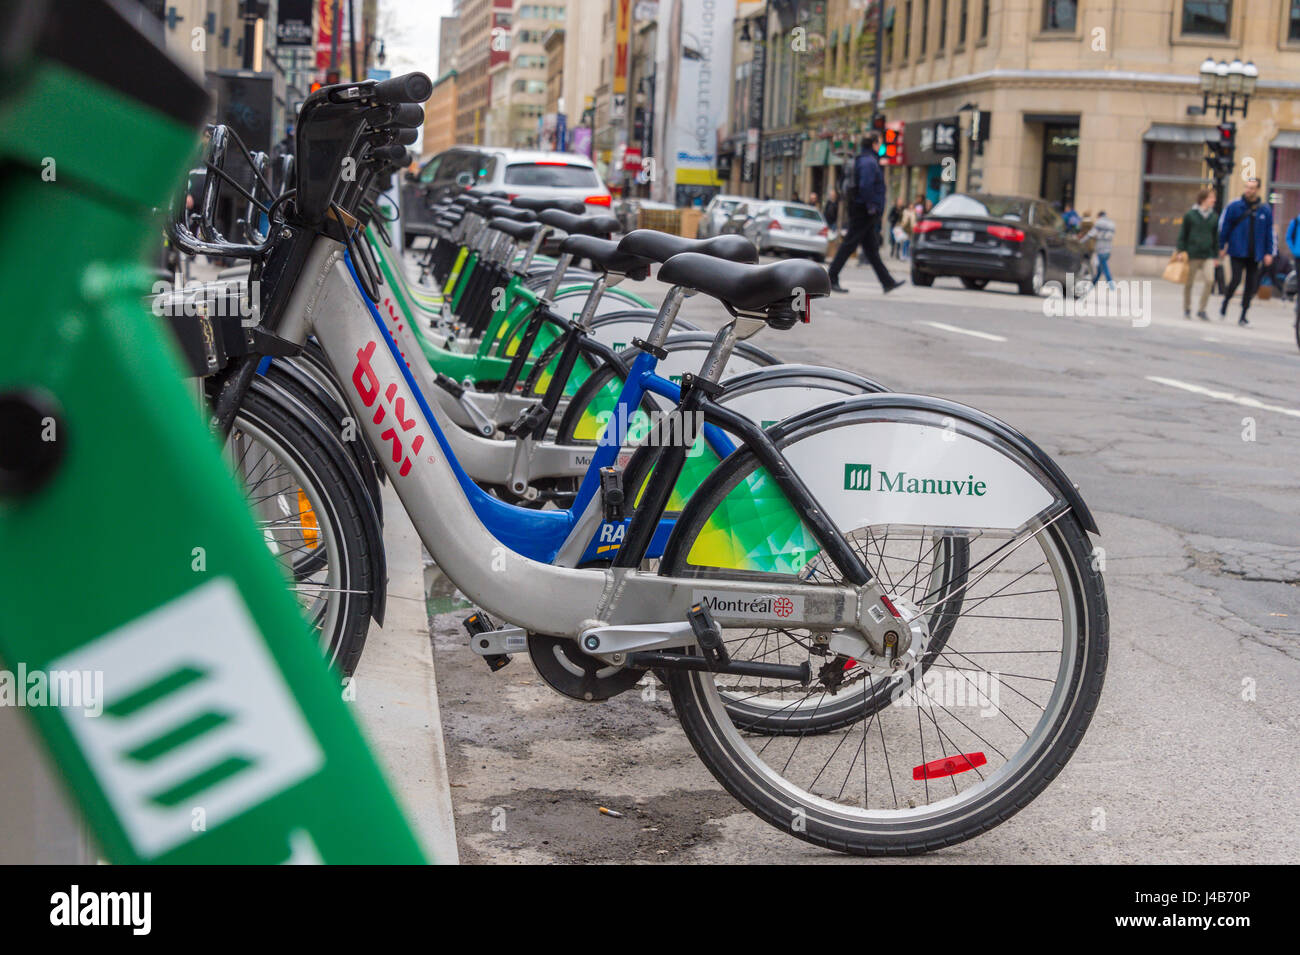 Montreal, CA - 11 May 2017: Bixi bike rental station on Ste-Catherine street - Stock Image